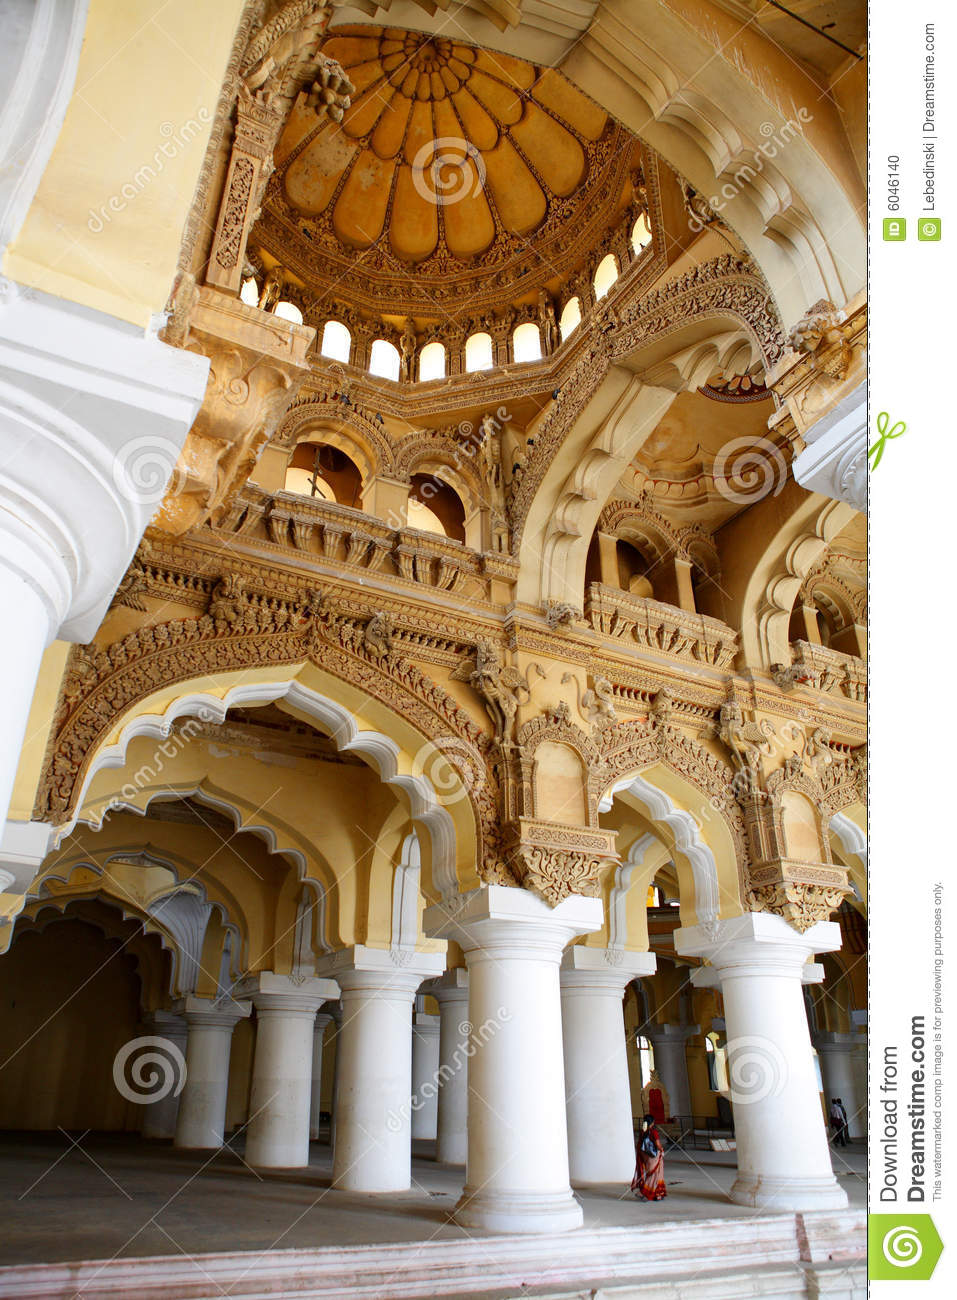 Ancient Palace Interior Stock Photo Image Of Building 6046140